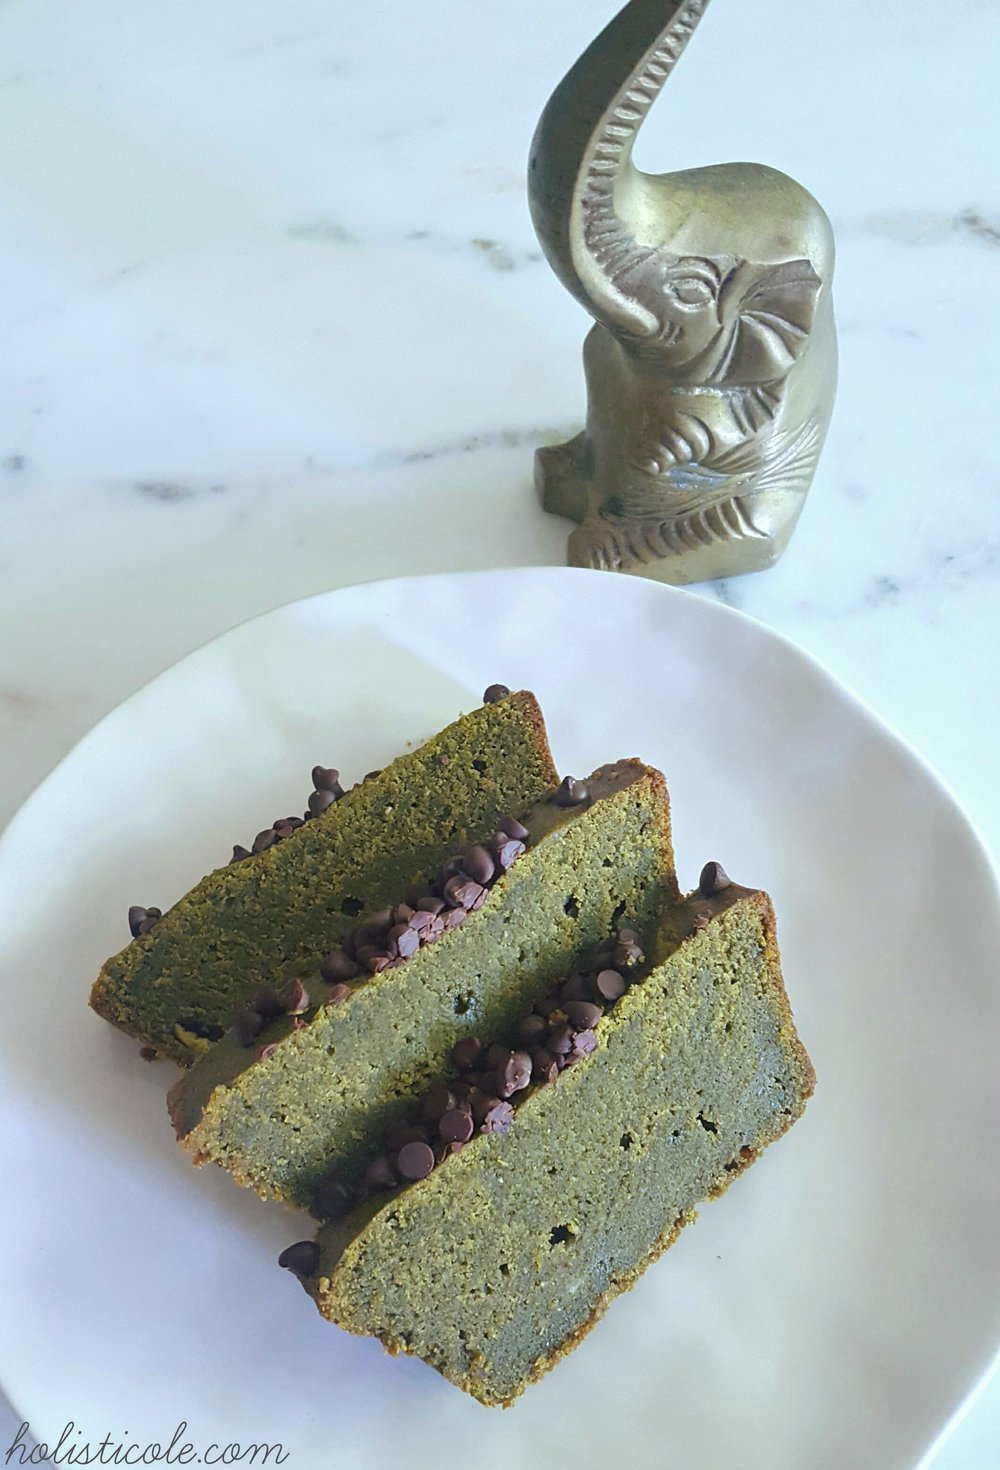 Holisticole - Matcha Green Tea Banana Bread